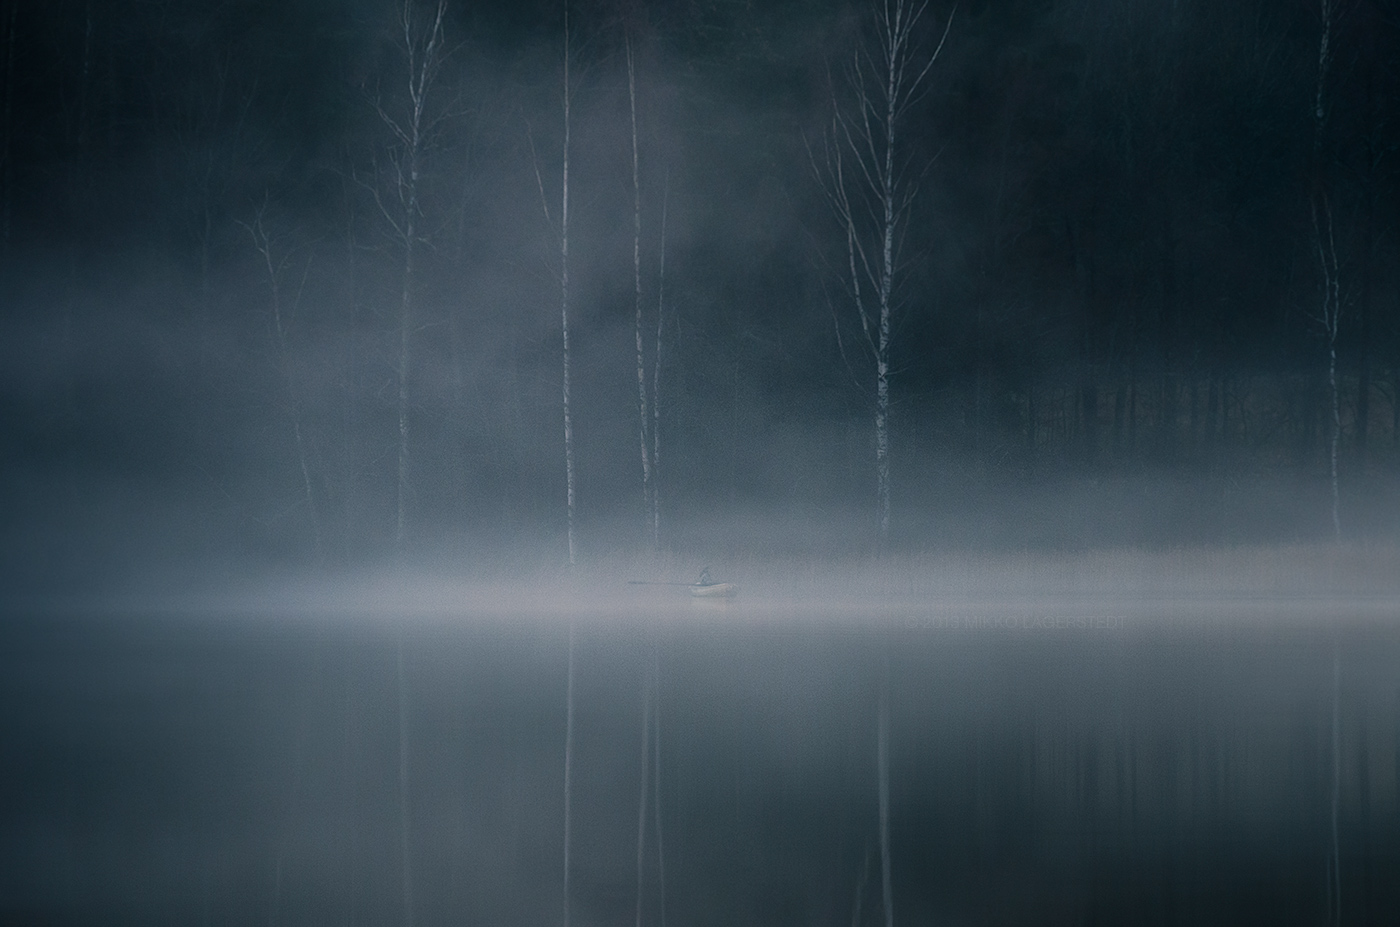 Lost in the shadows by MikkoLagerstedt